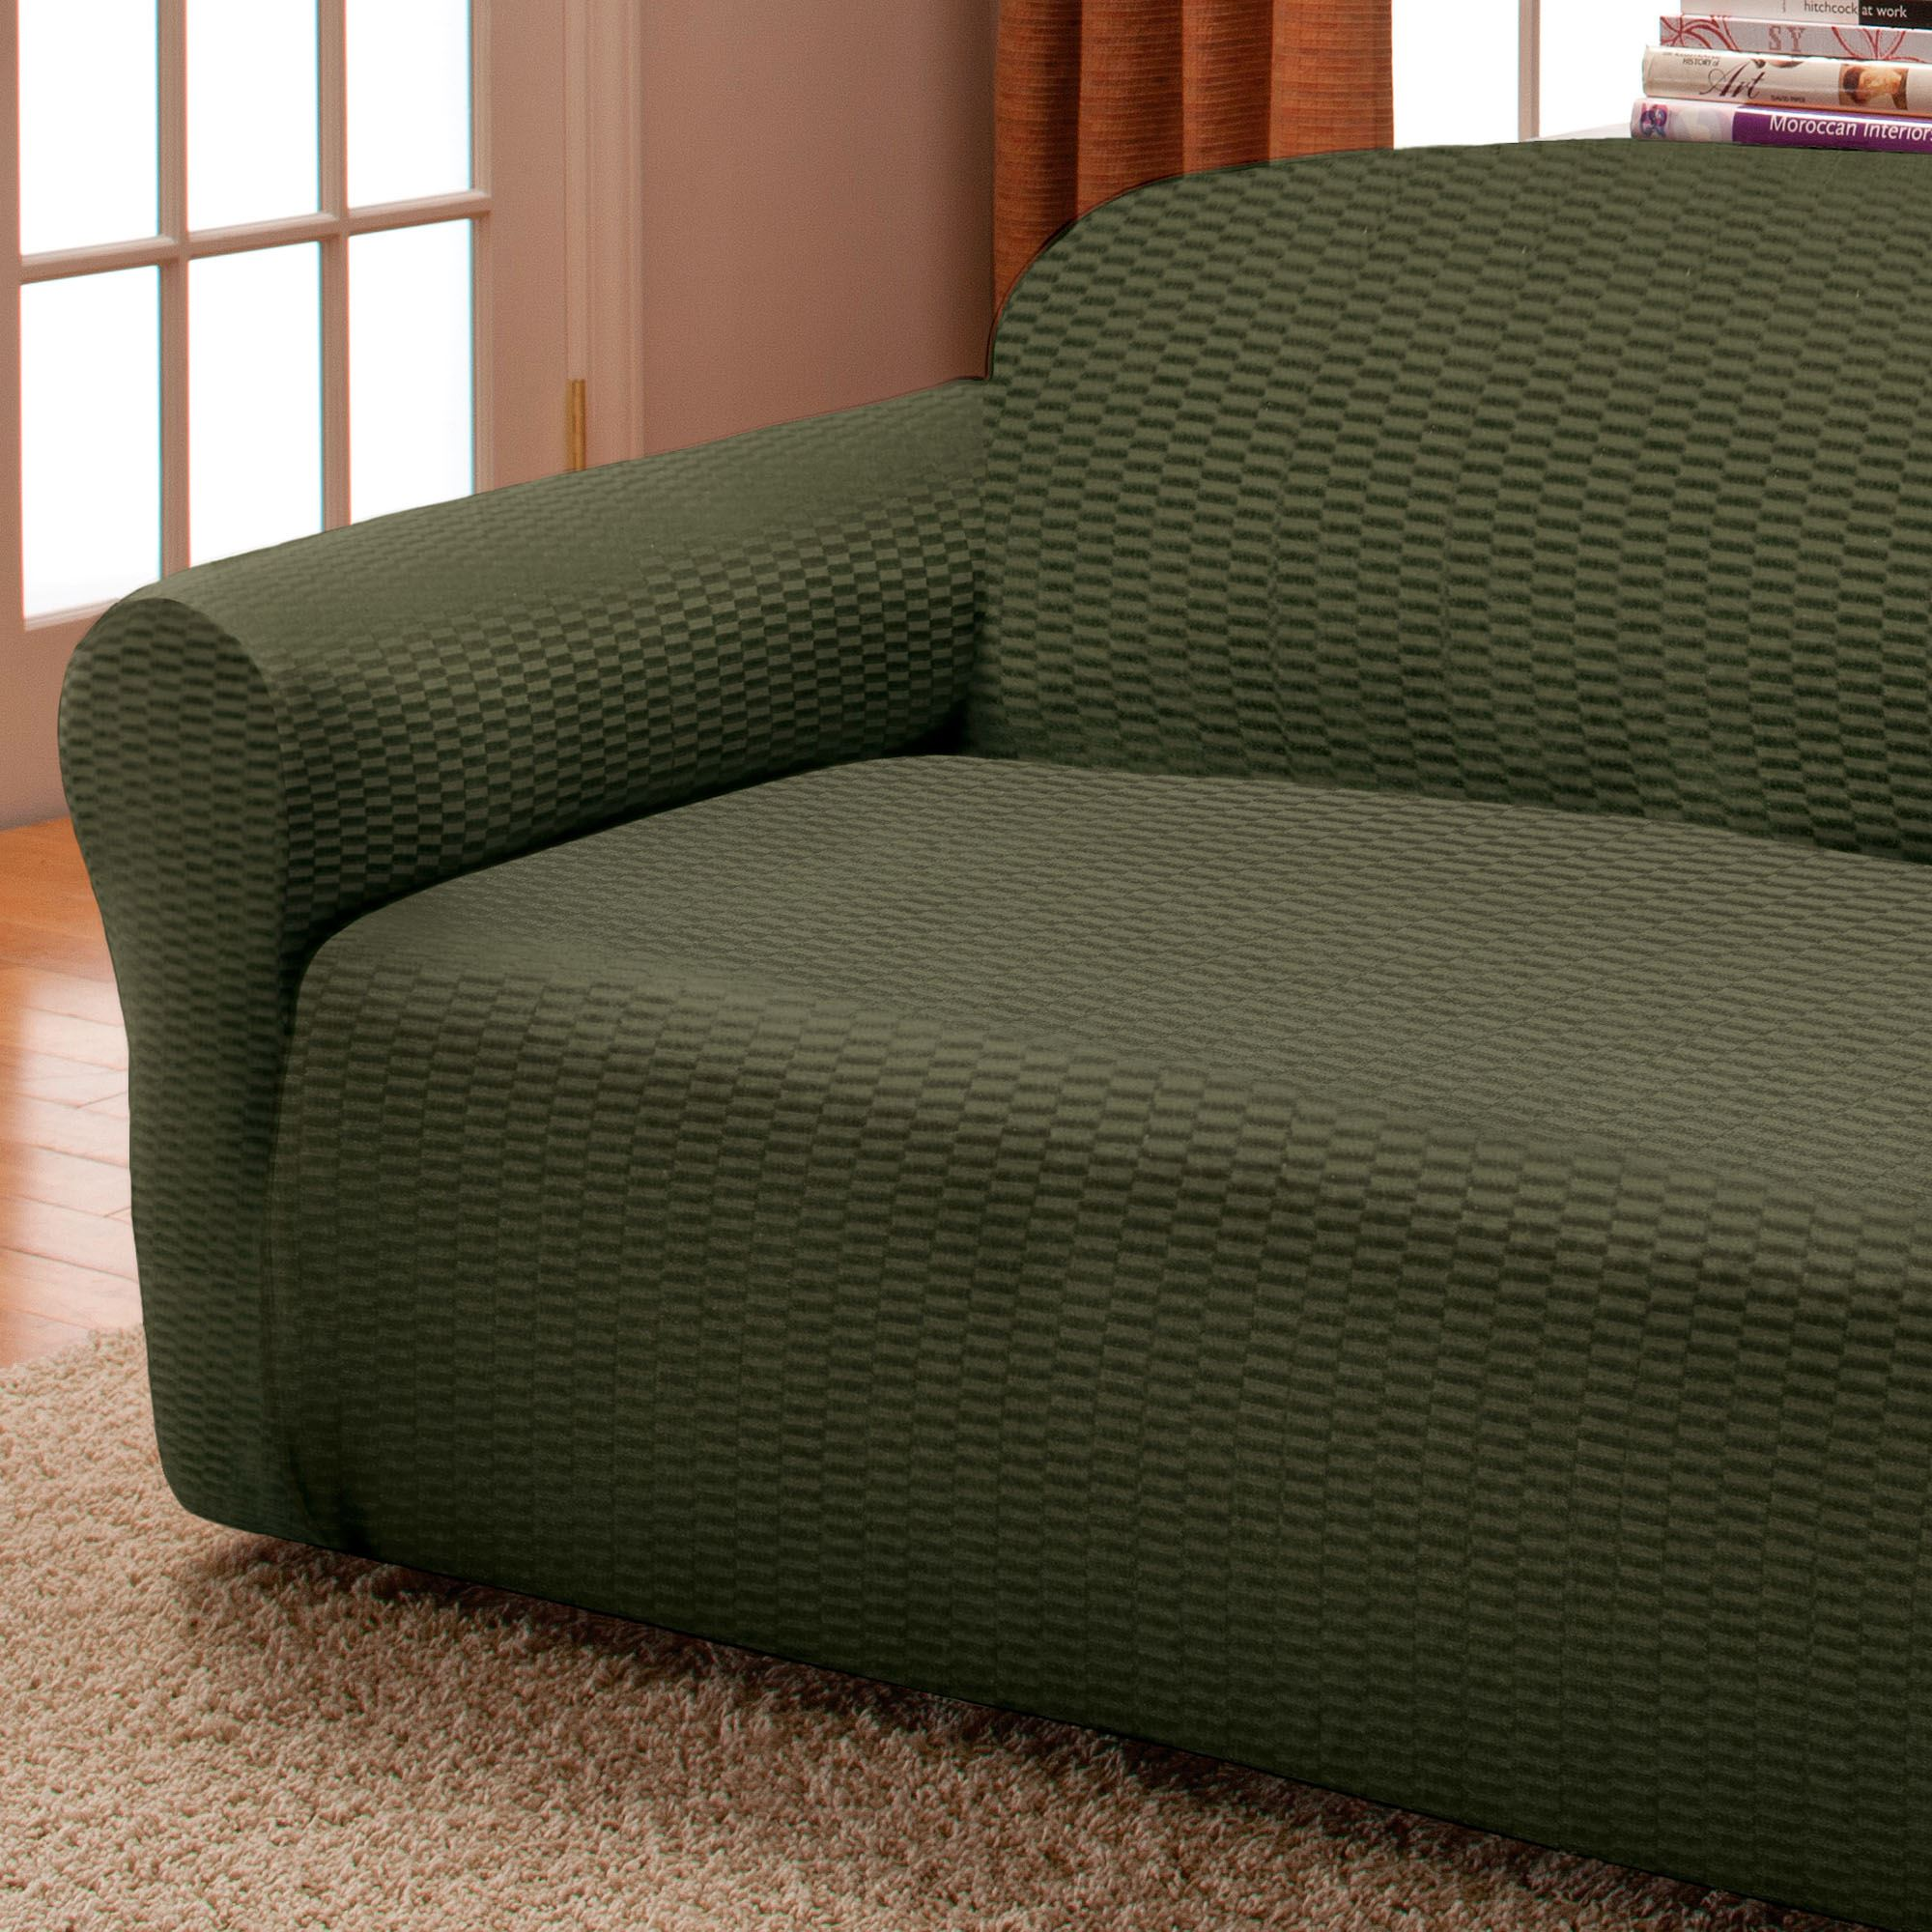 Stretch Slipcover Sofa How To Install A 2 Piece Stretch Slipcover By Caber Sure Fit Inc Thesofa